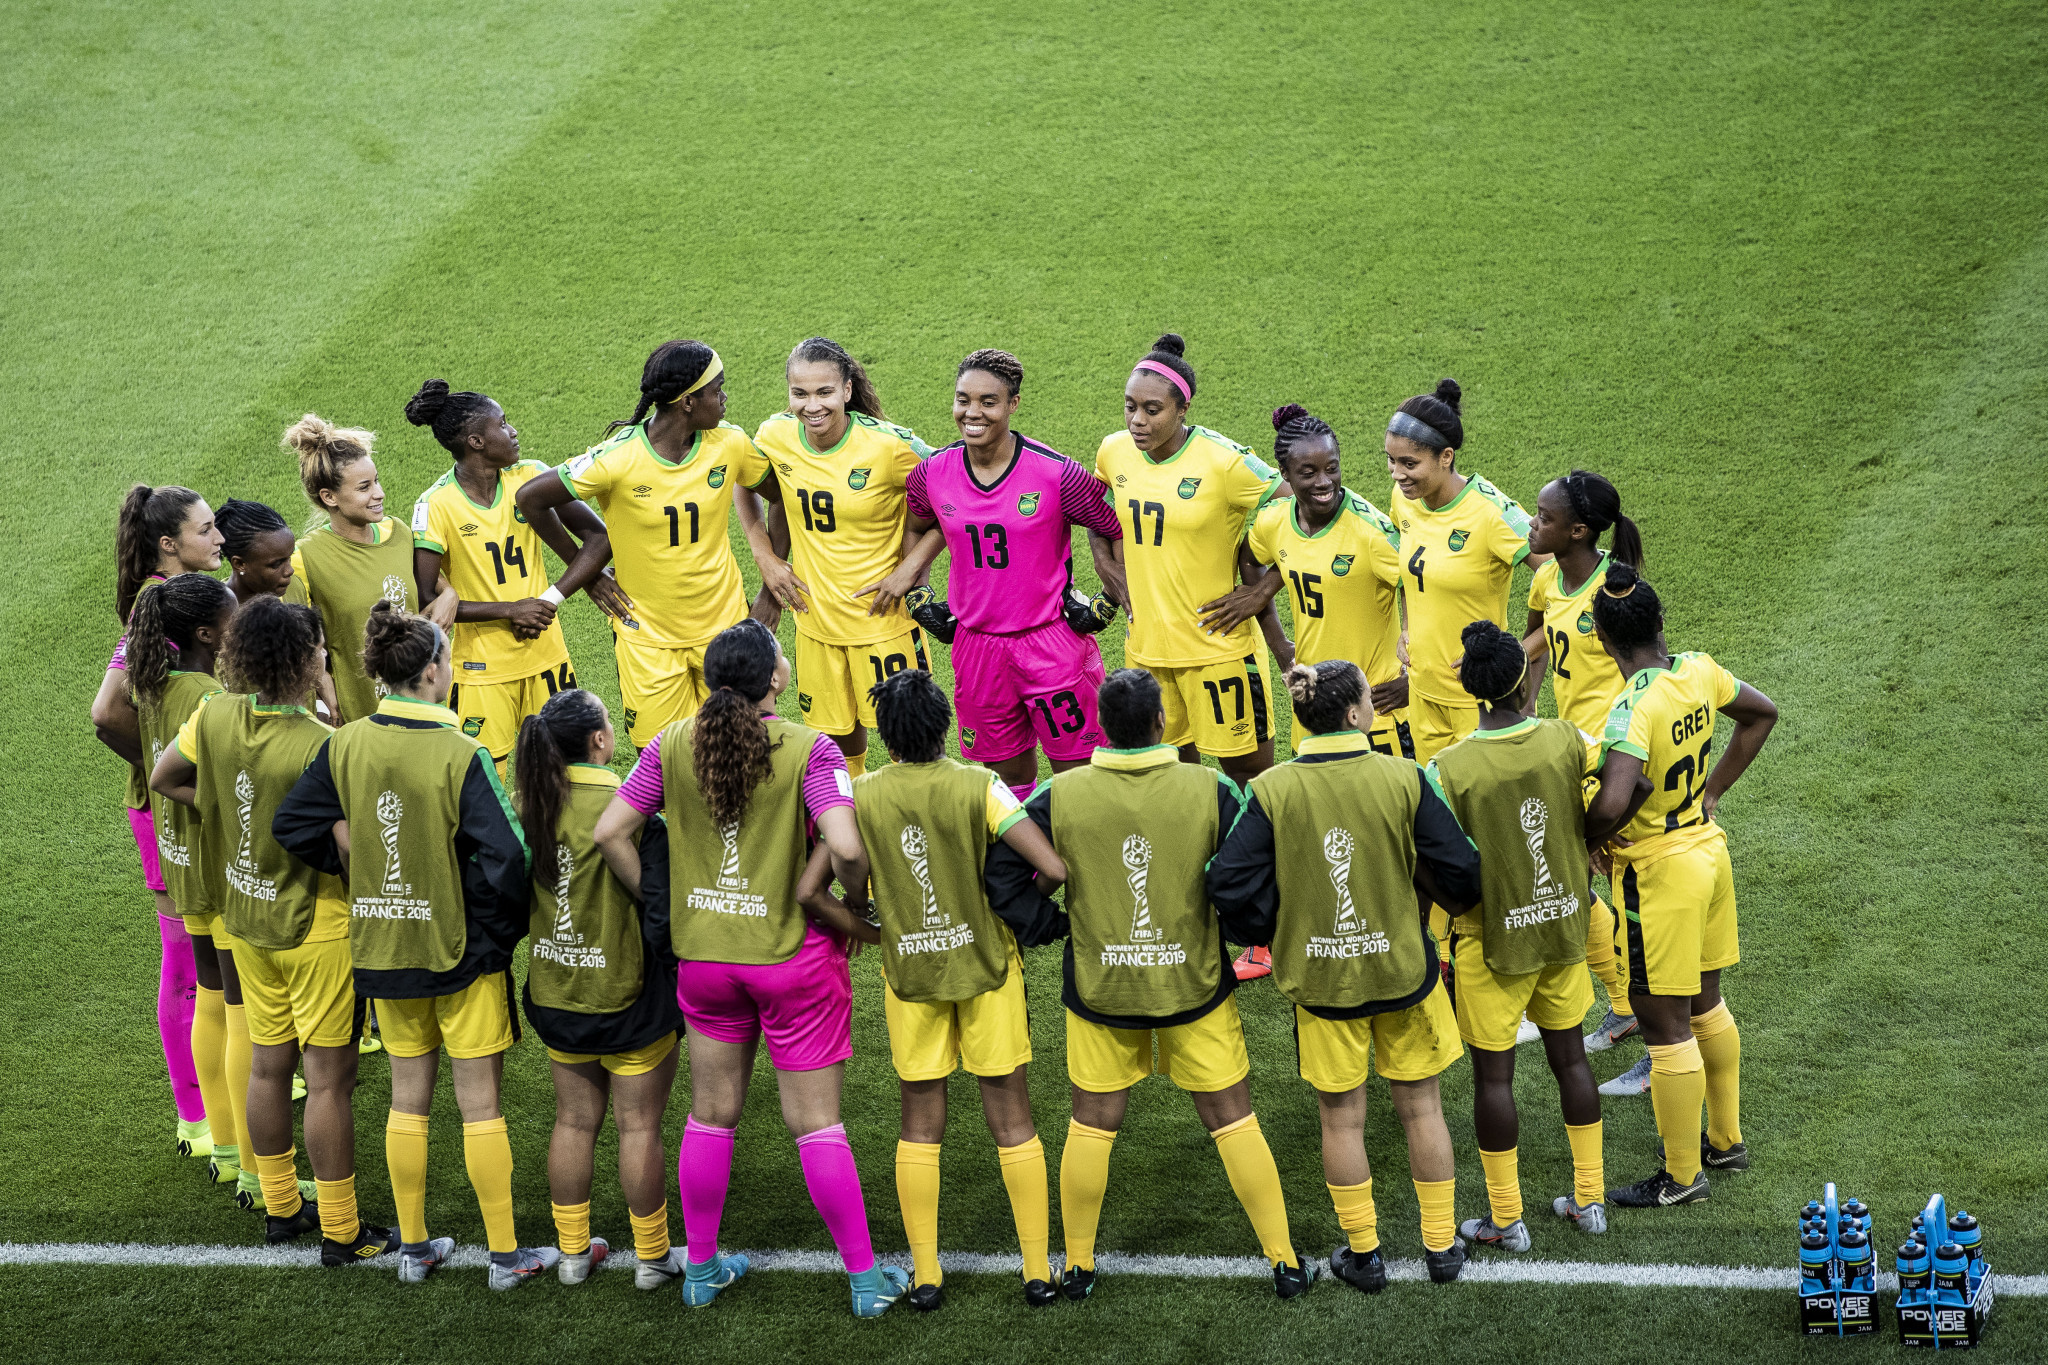 The Jamaican women's football team are still waiting for payment from the FIFA Women's World Cup, a story that has made headlines ©Getty Images